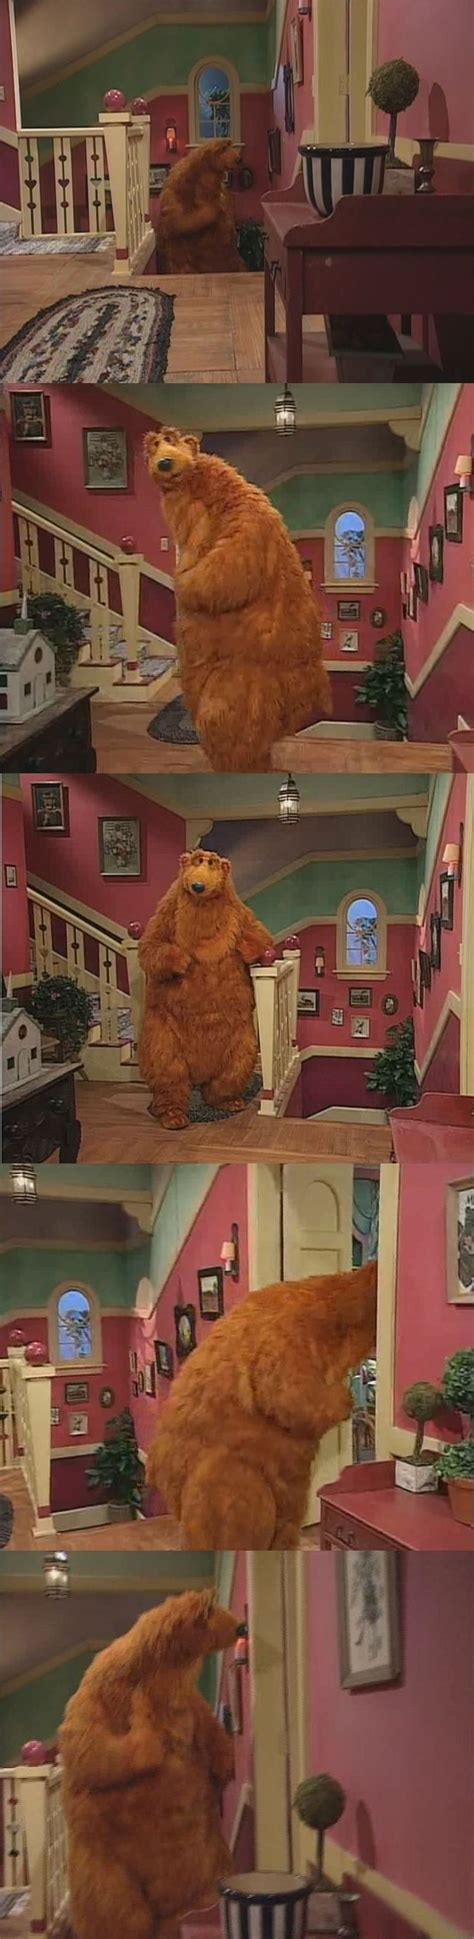 bear inthe big blue house music bear in the big blue house bing images